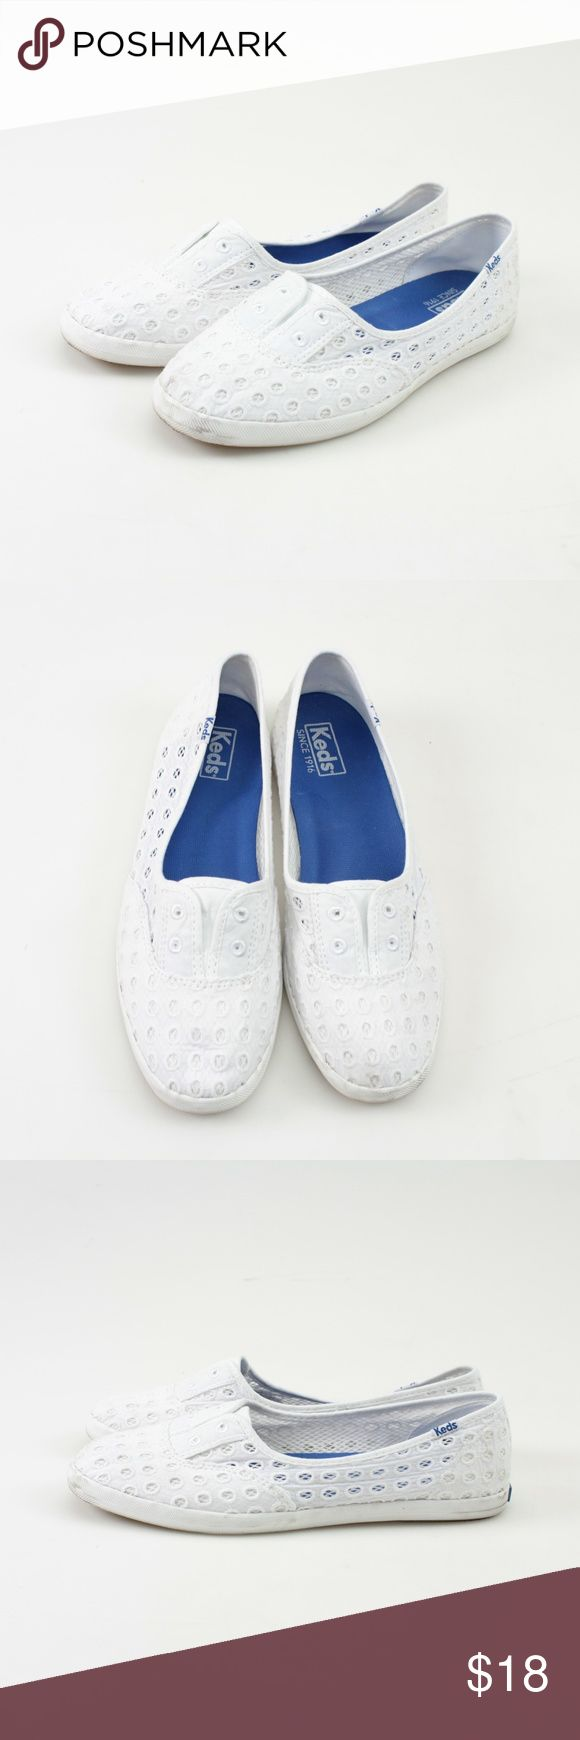 Keds White Eyelet Lace Slip On Flat Sneaker // 8.5 Lighten up your springtime with these adorable white shoes from Keds! Soft and delicate eyelet lace Cushioned footbed Rubber sole Slip On style  These shoes have been loved but have a lot of life left!  Only marking on the soles and rubber. See photos for all details. These do come in a box. #10KD18 // Keds // Slip Ons // All White keds Shoes Sneakers